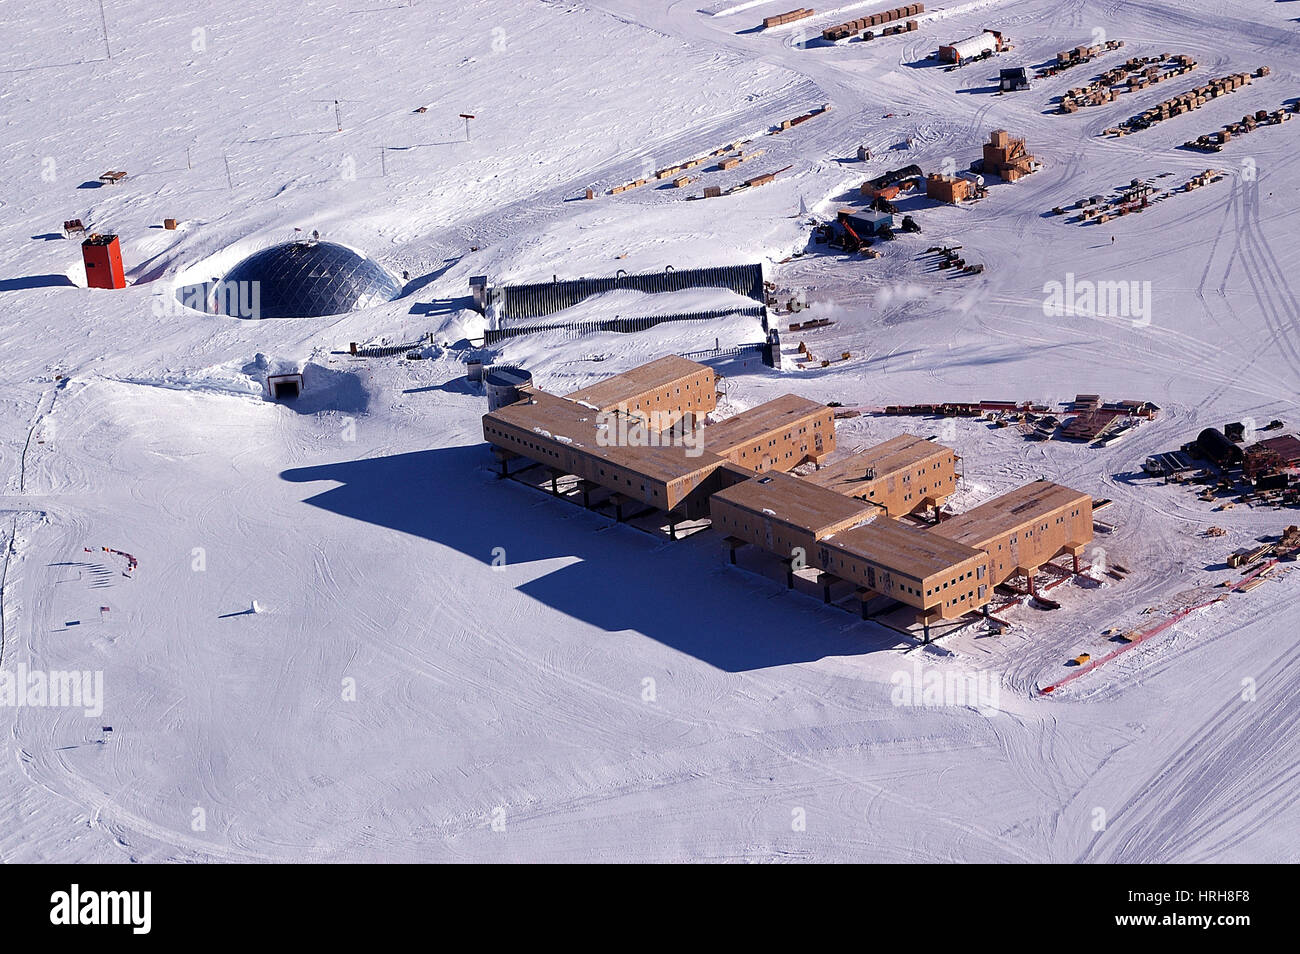 Amundsen-Scott South Pole Station - Stock Image